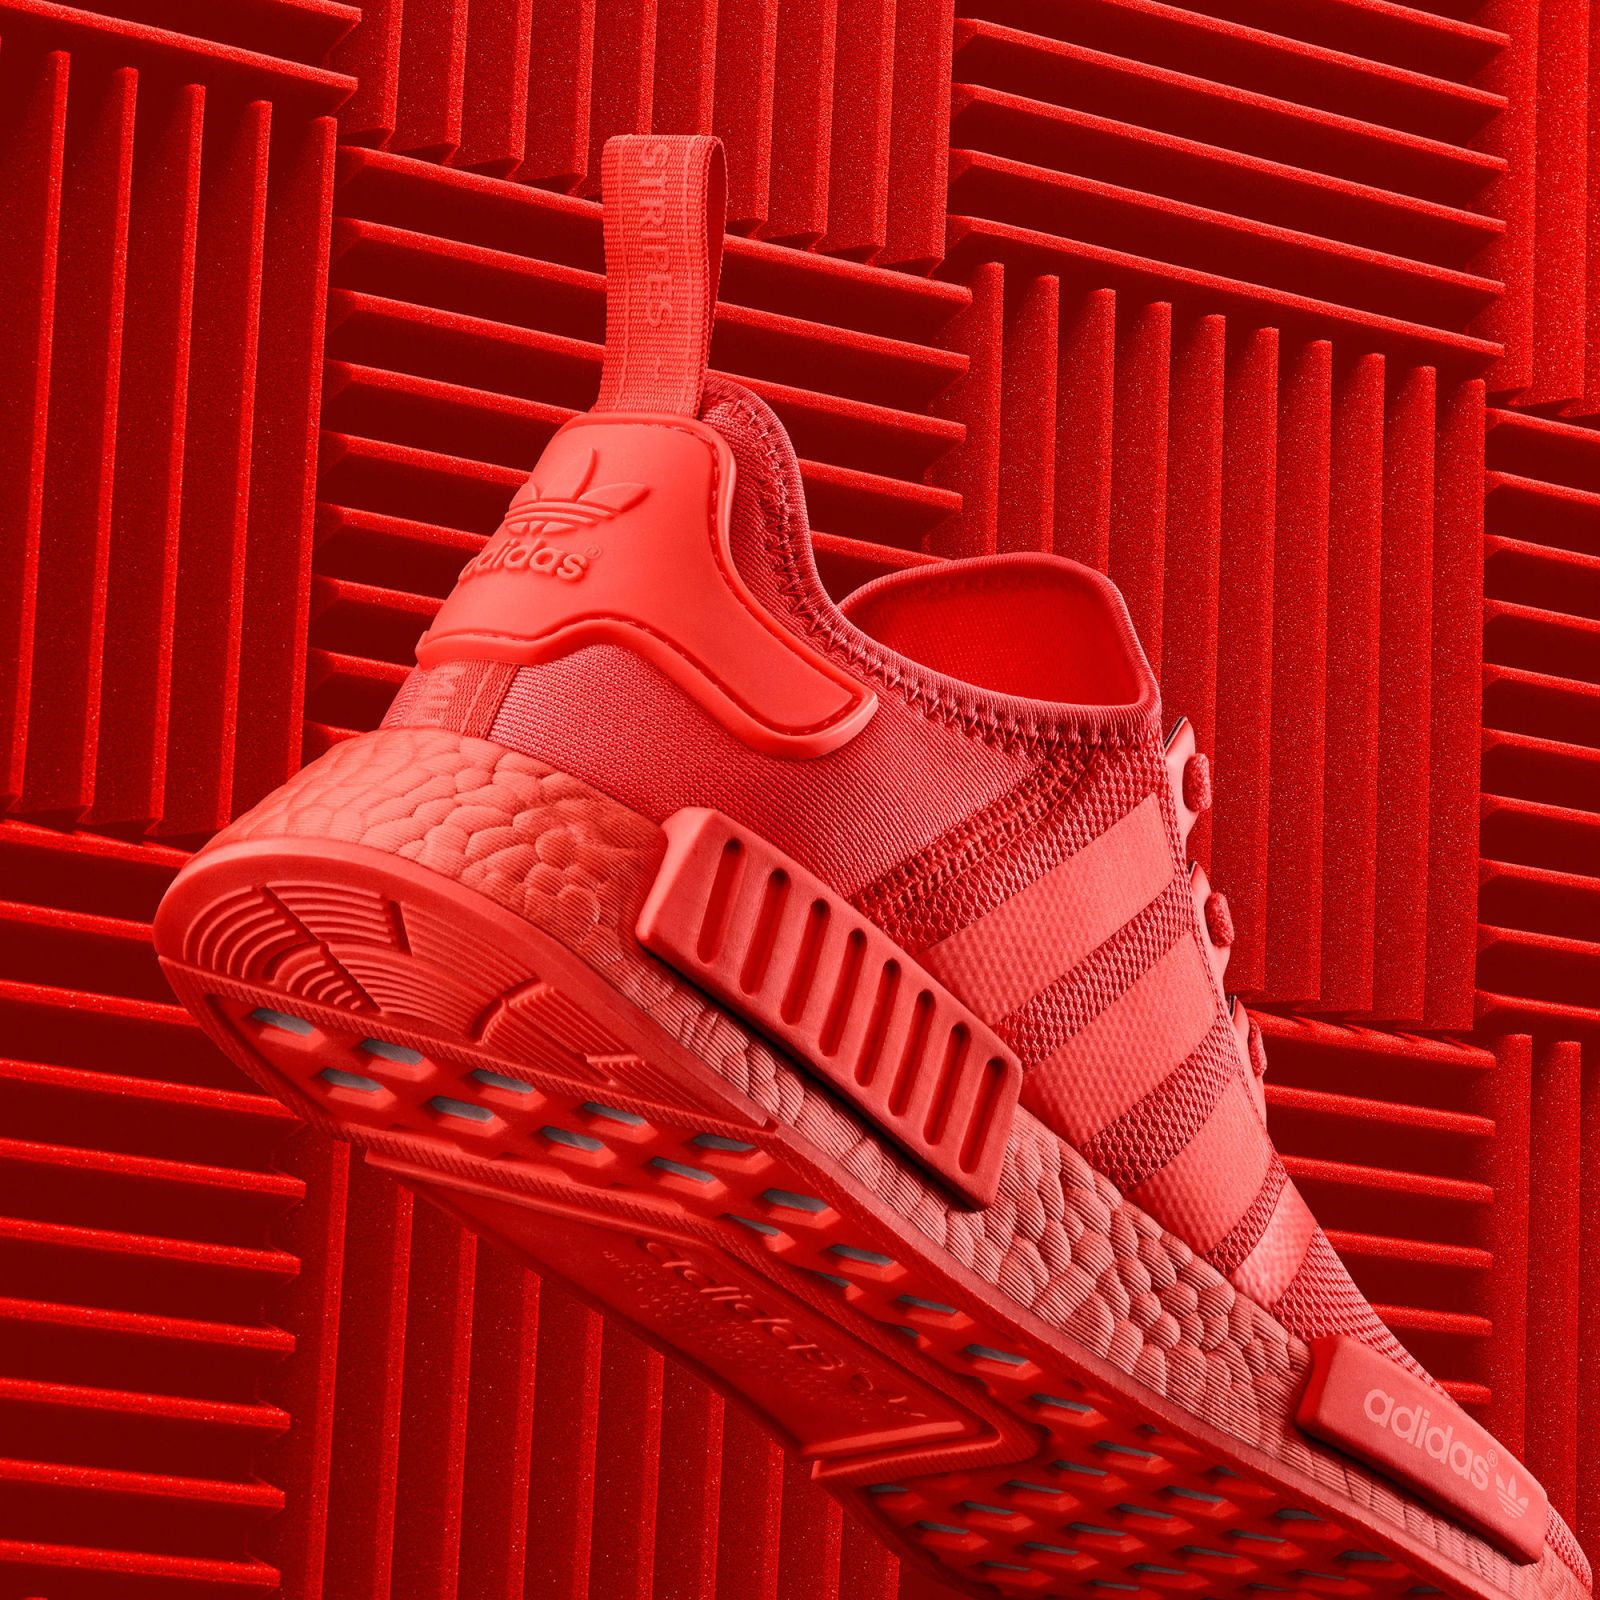 Nmds A New More Are Pair Sneakers Adidas Than Red The Just Of 3RjL54A